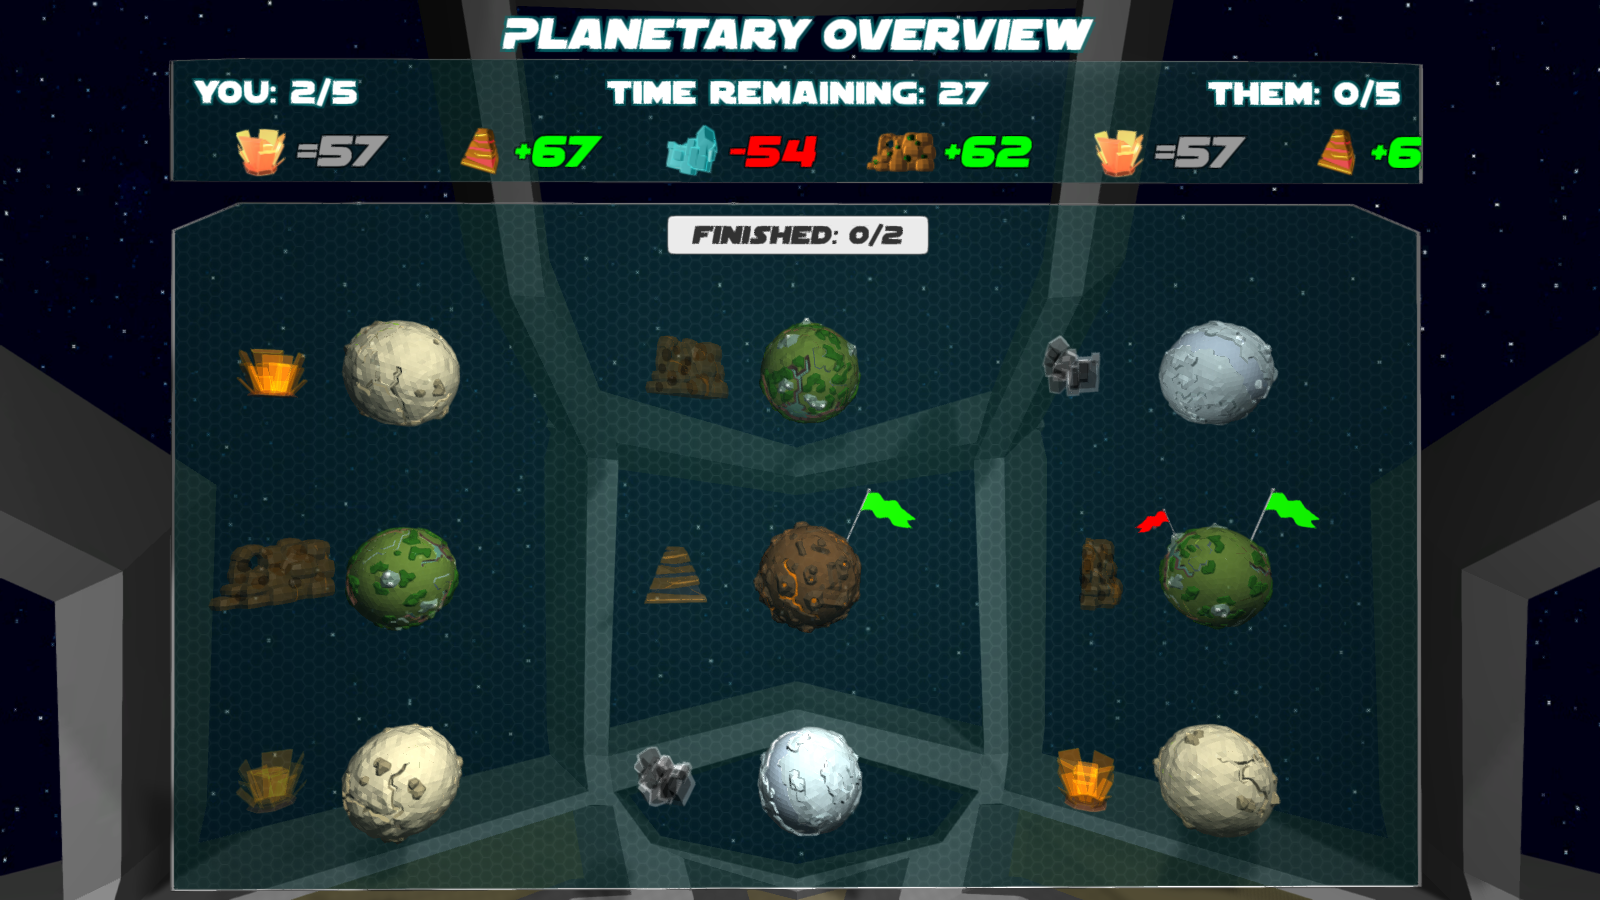 Planetary Overview with 2 planets owned